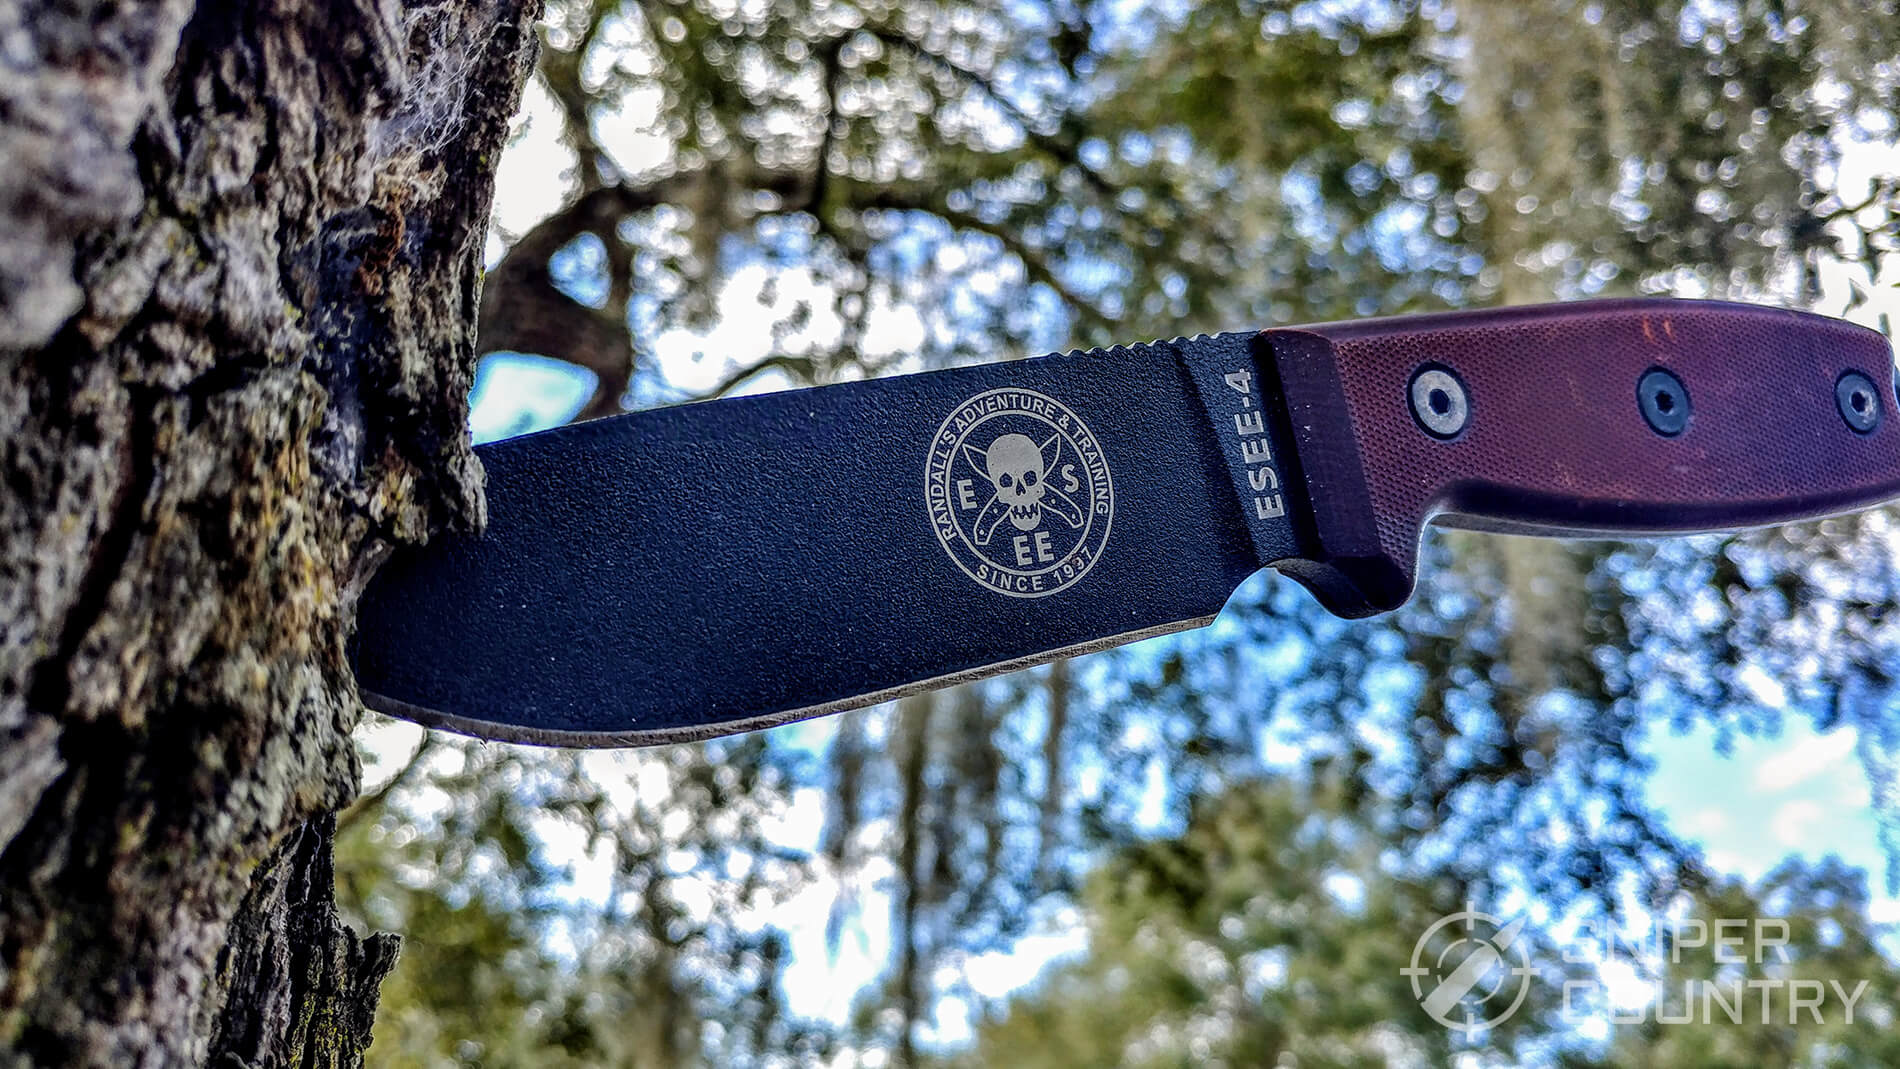 The Esee 4